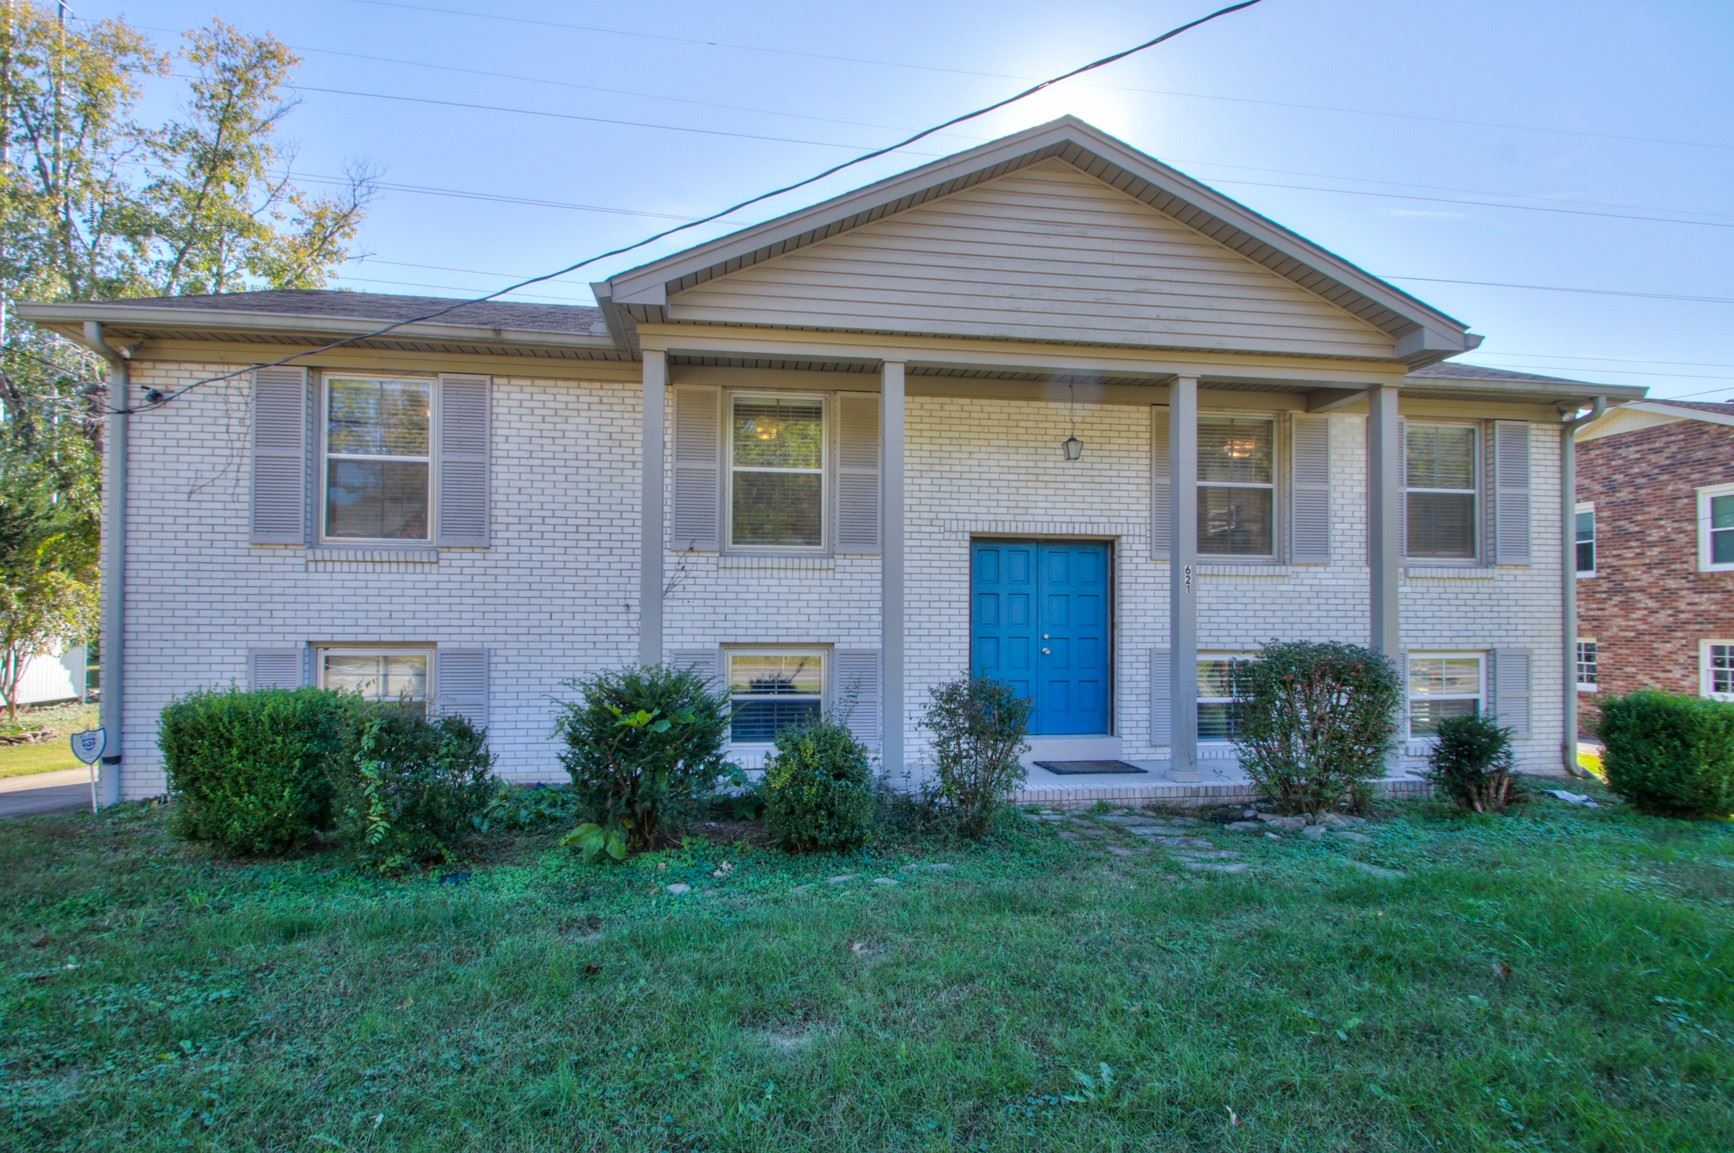 621 Huntington Pkwy, Nashville, TN 37211 - MLS#: 2204735